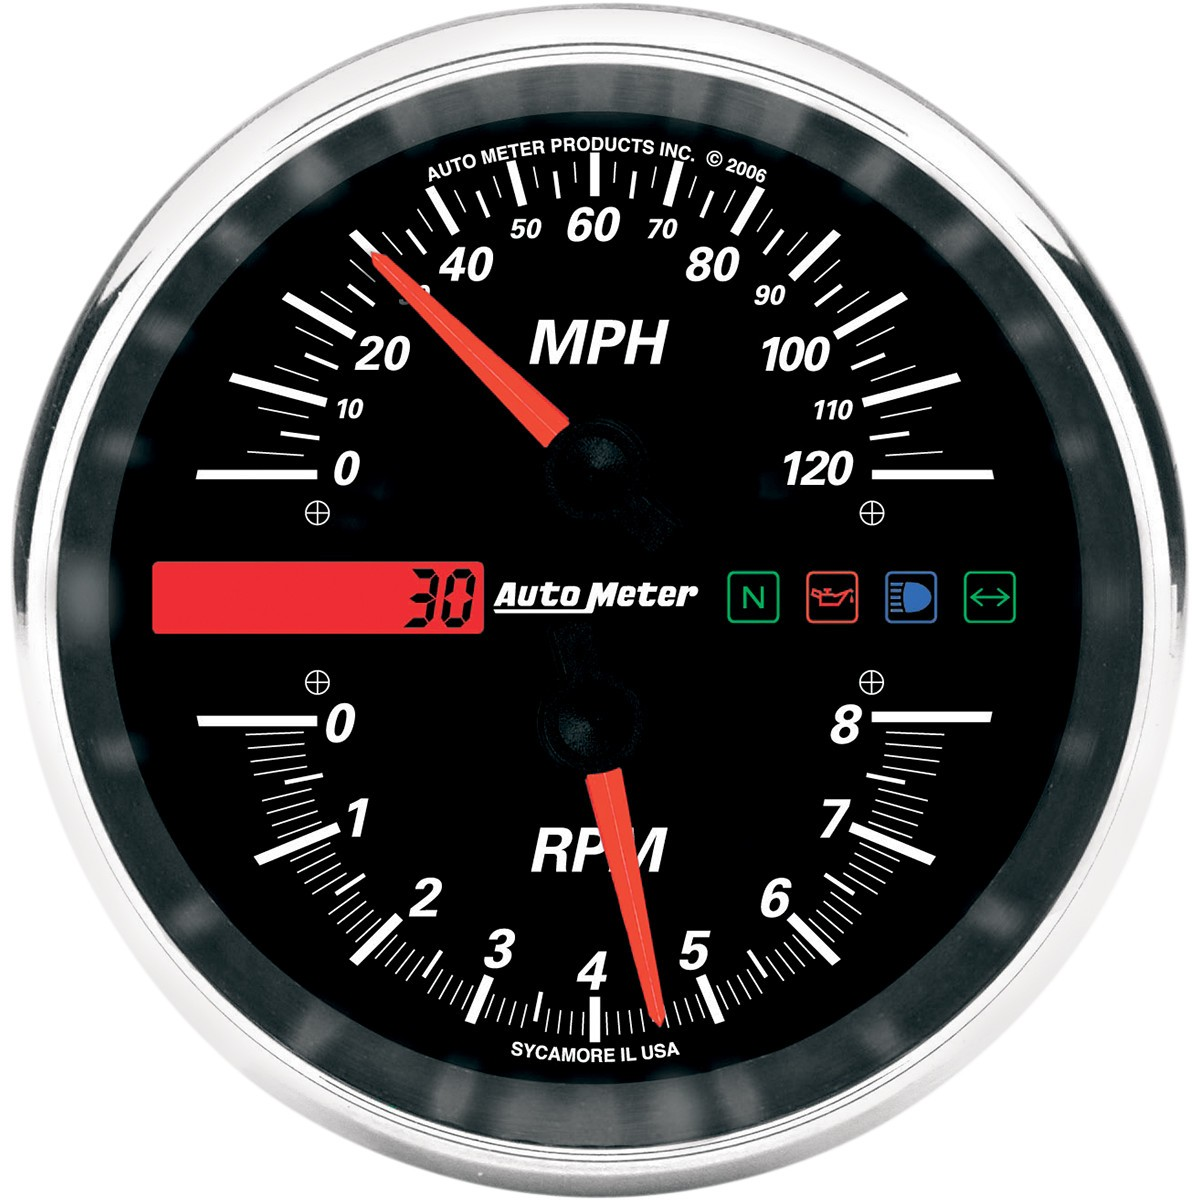 Electronic Speedometer Gauges : Auto meter electronic mph speedometer tachometer drop in